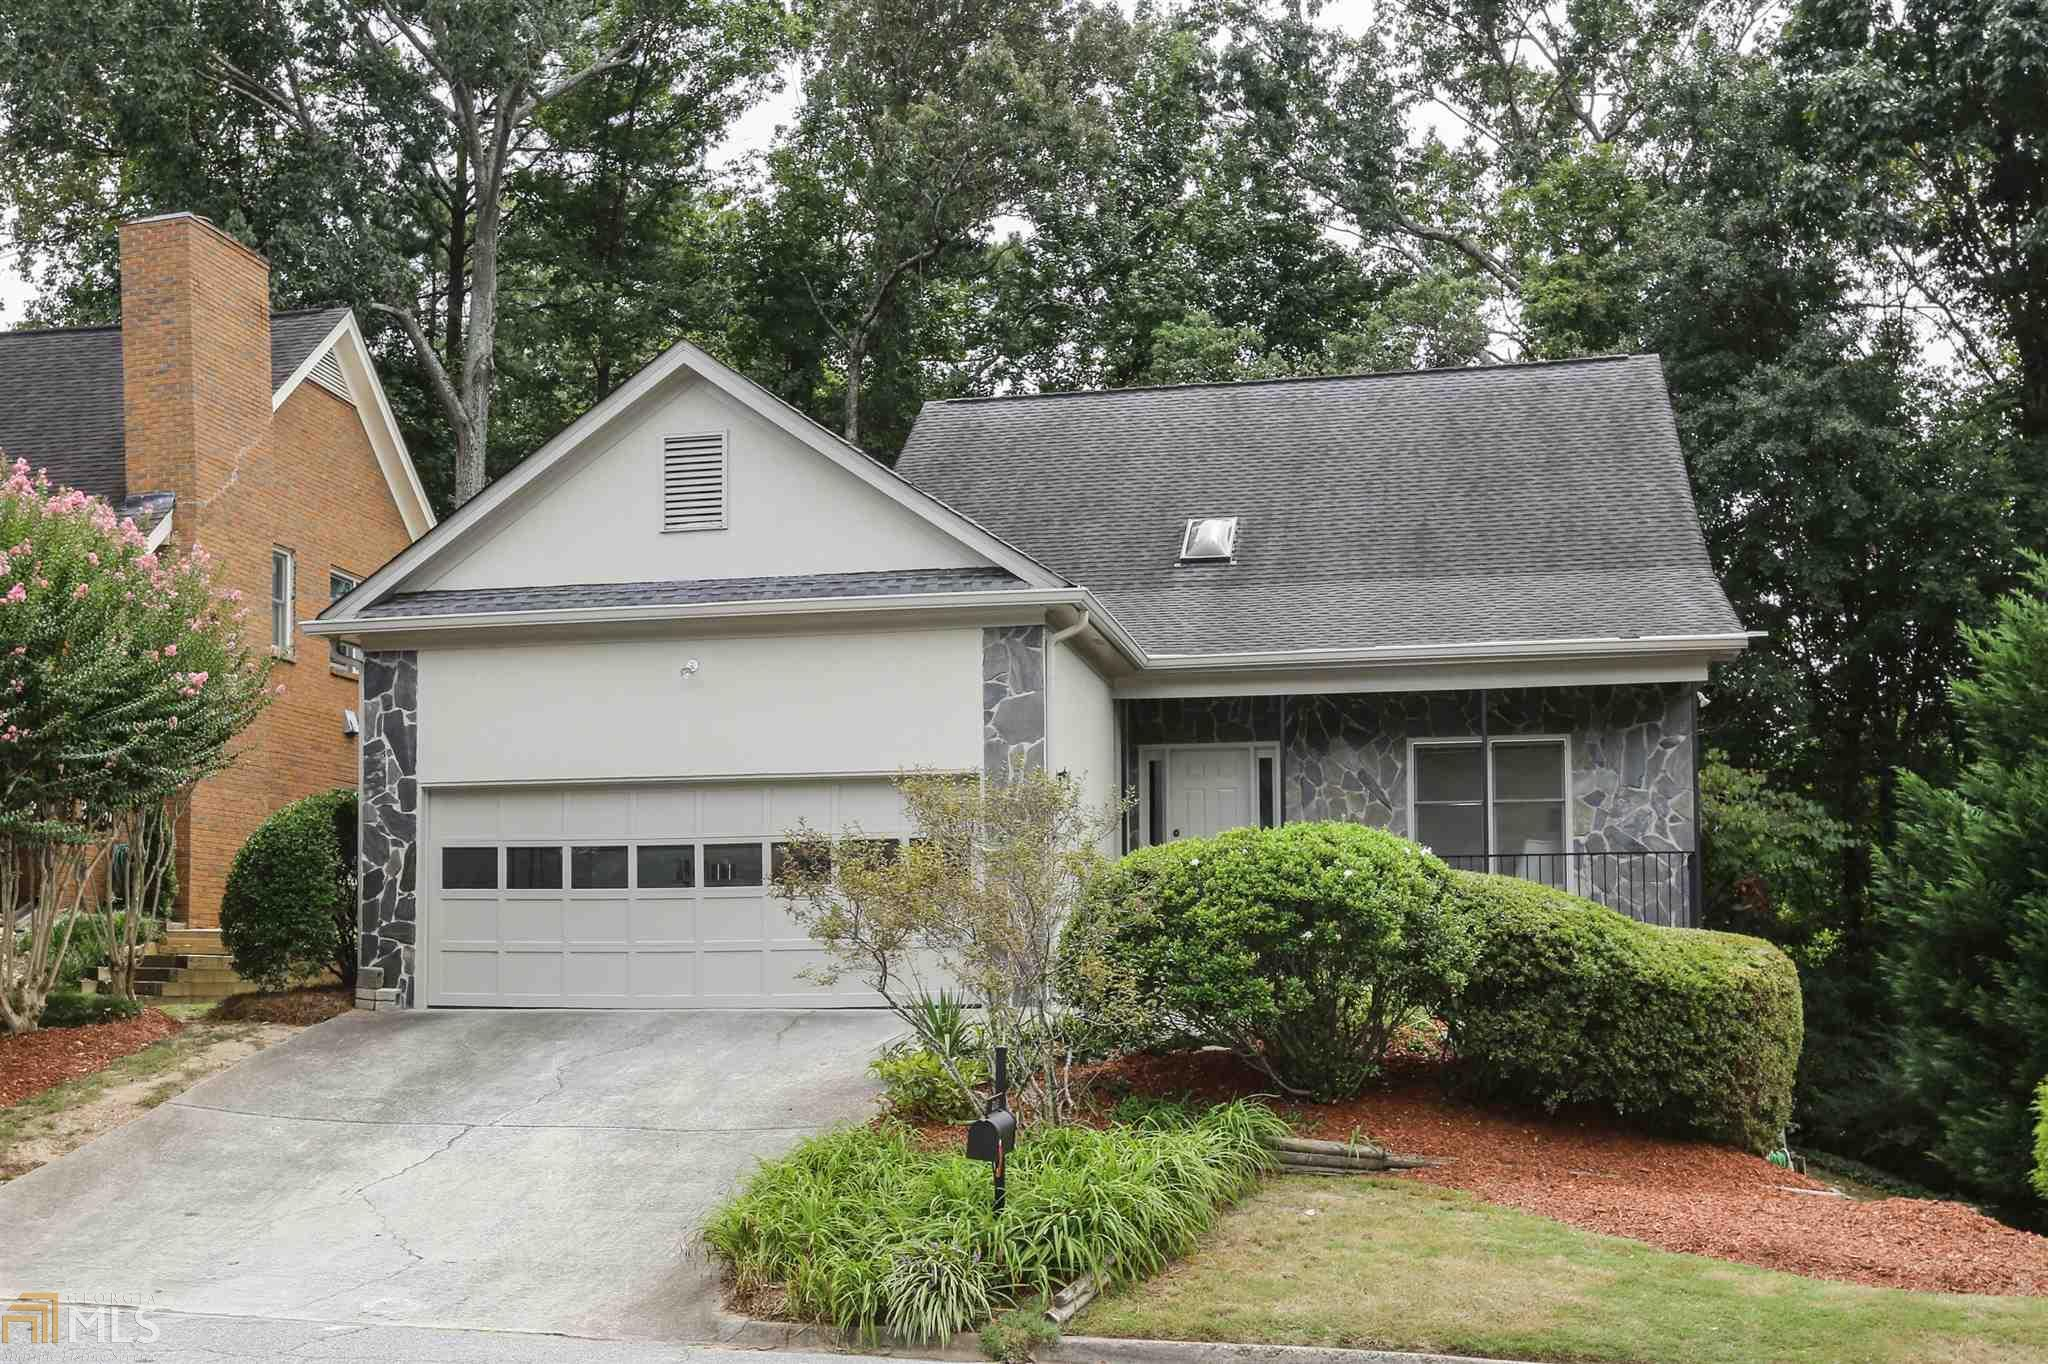 4 bed/4 bath Home in Decatur for $499,900